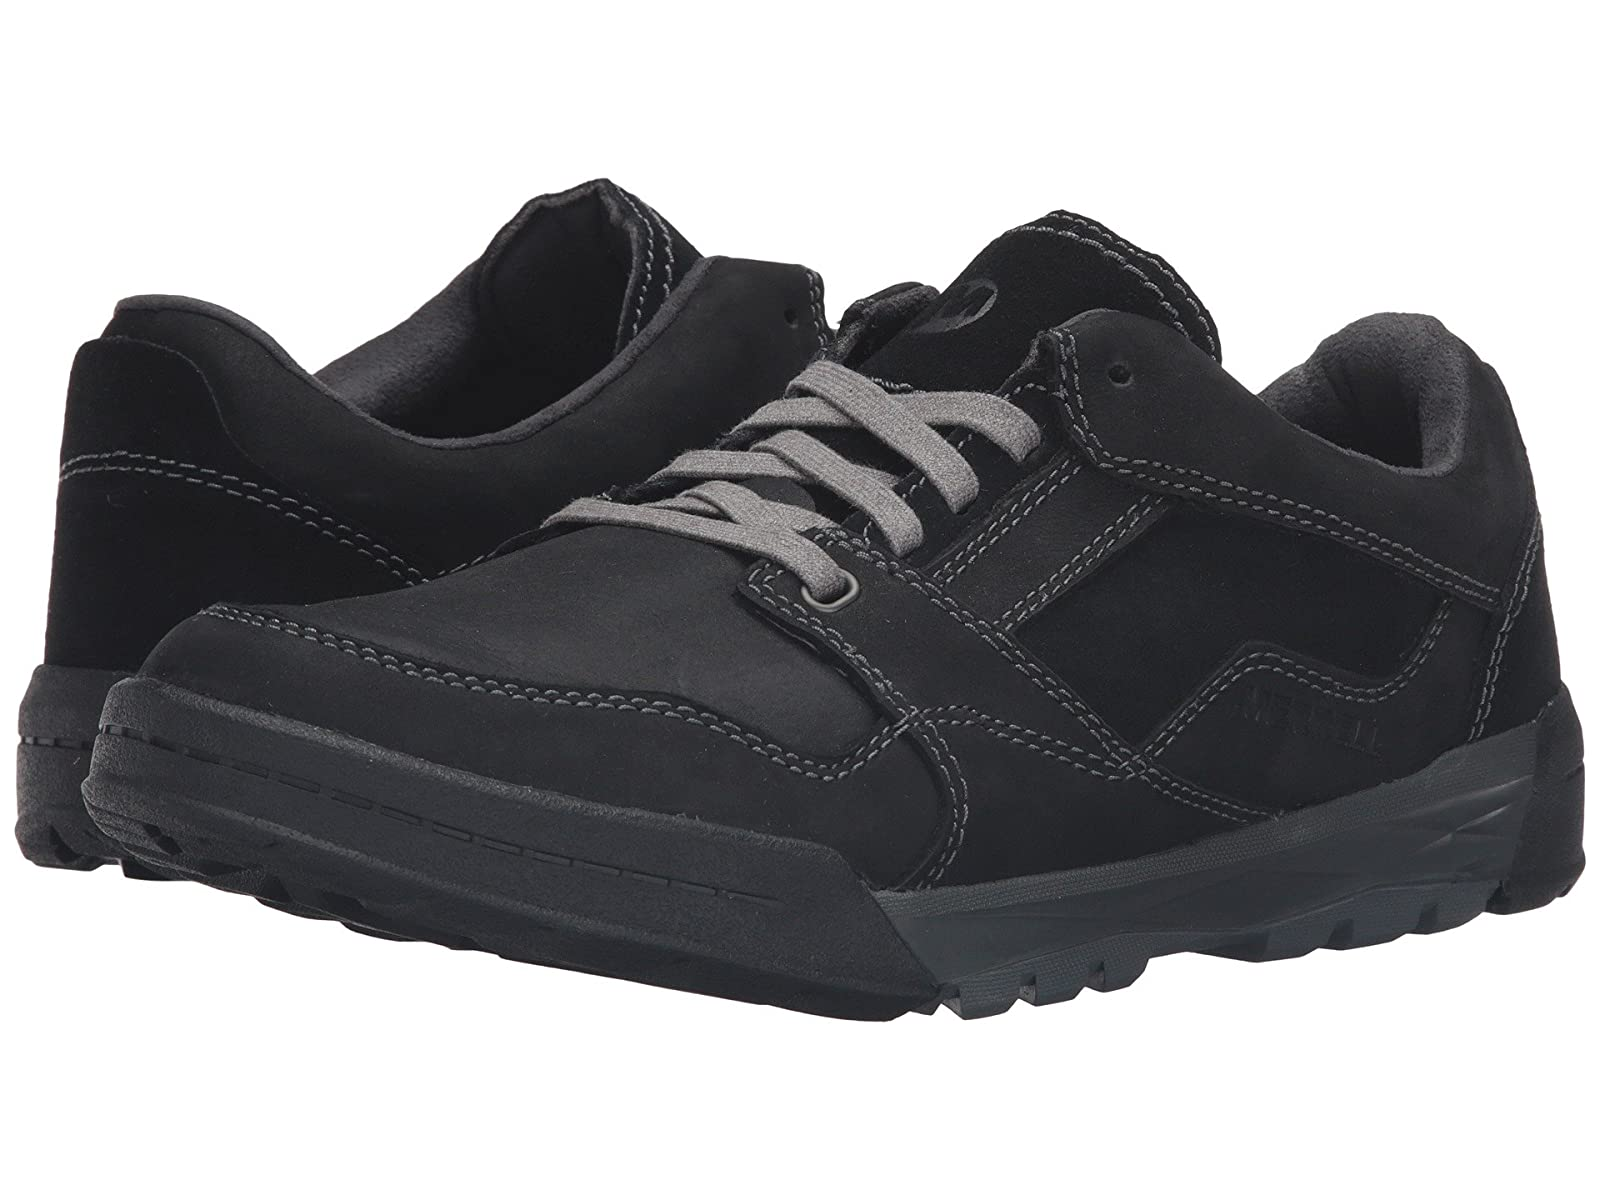 Merrell Berner LaceCheap and distinctive eye-catching shoes